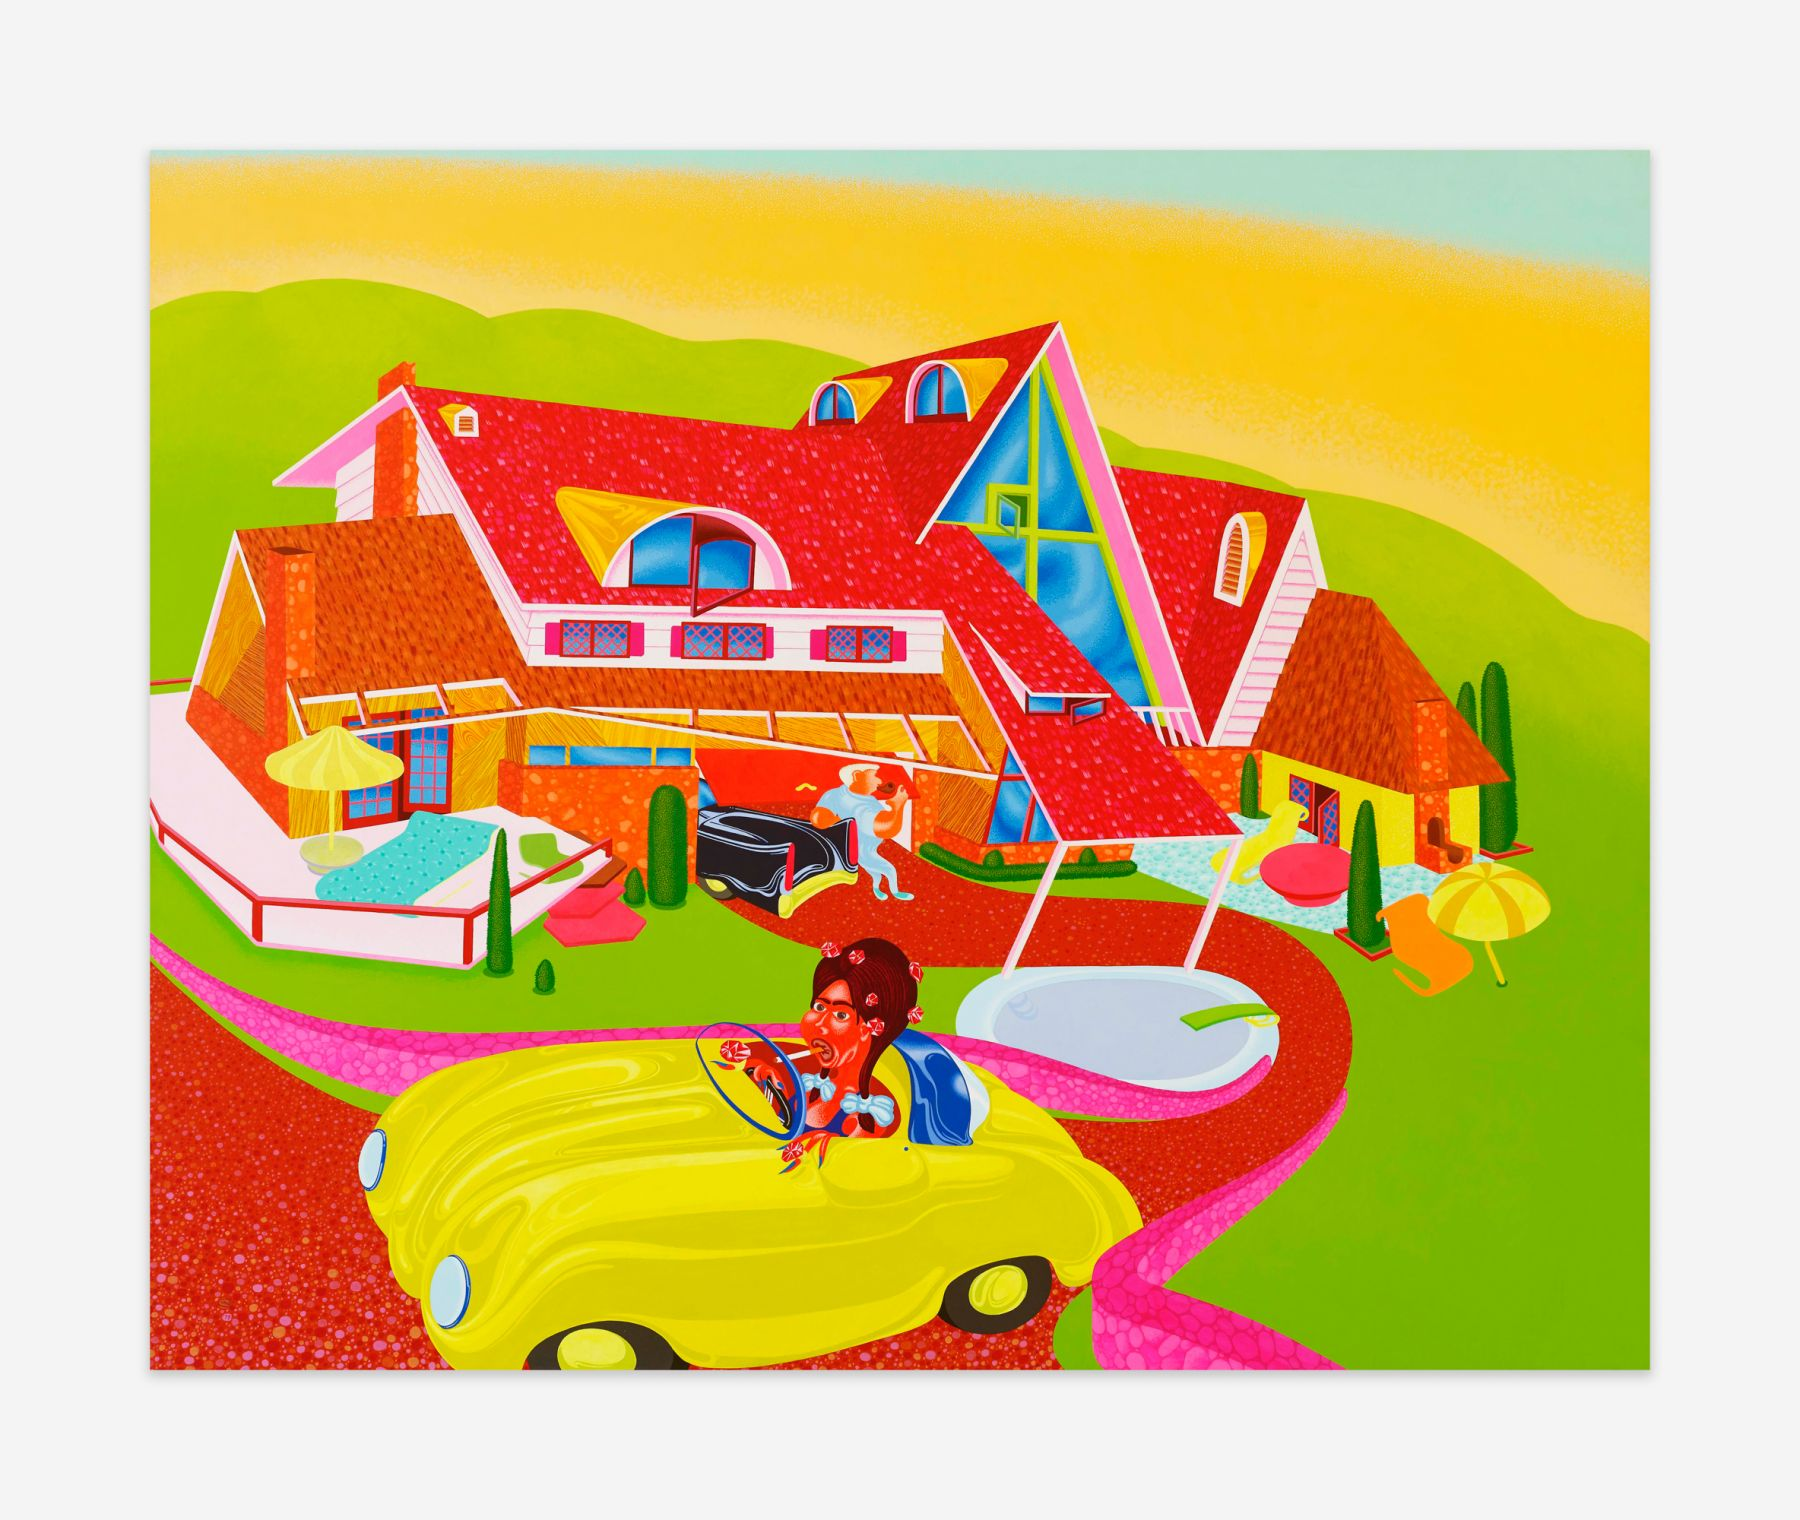 Peter Saul Untitled, 1973